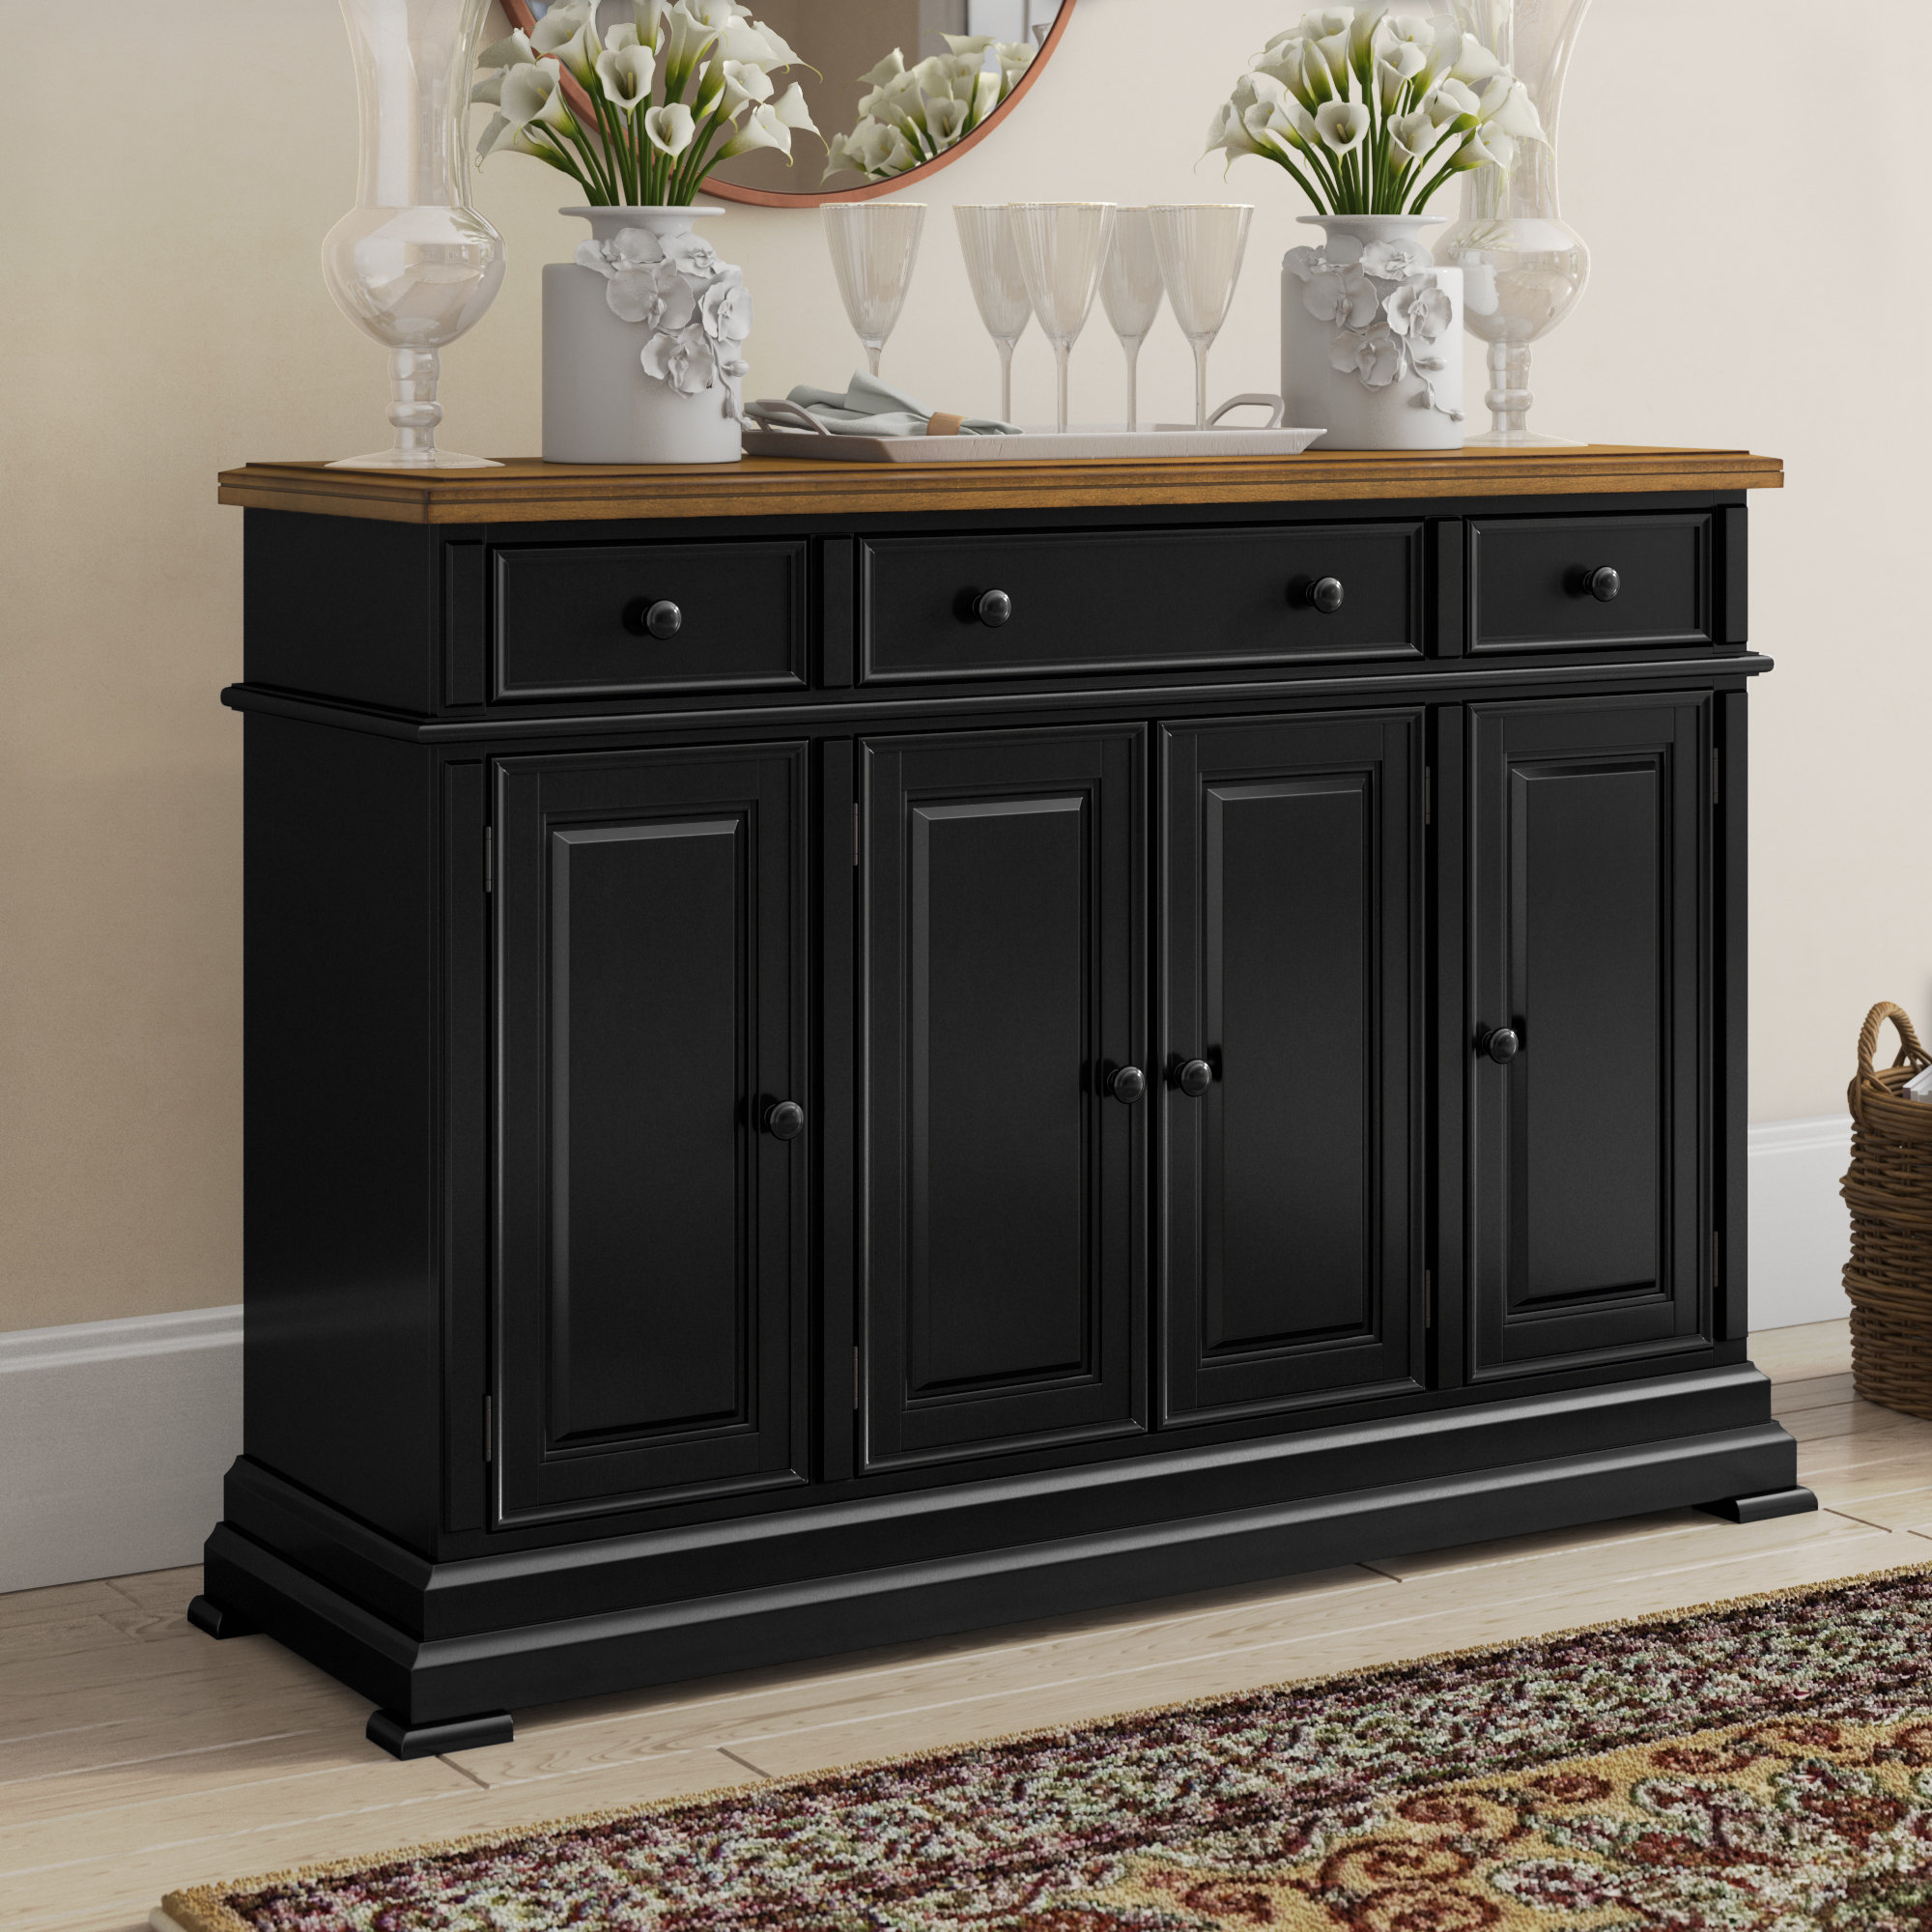 Courtdale Sideboard Throughout Adelbert Credenzas (Image 9 of 30)